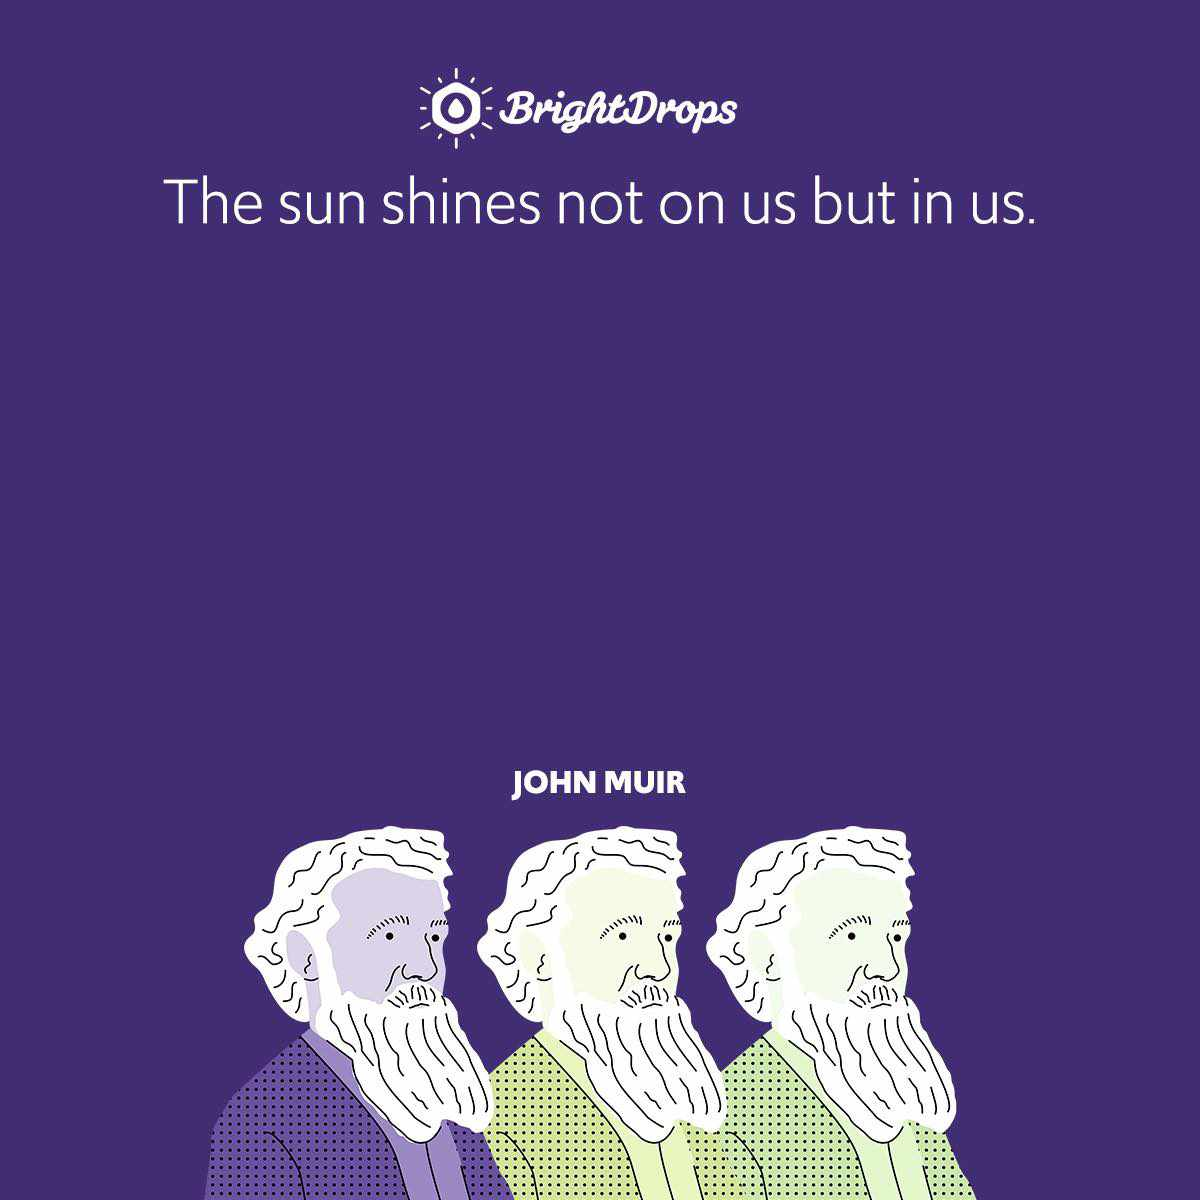 The sun shines not on us but in us.